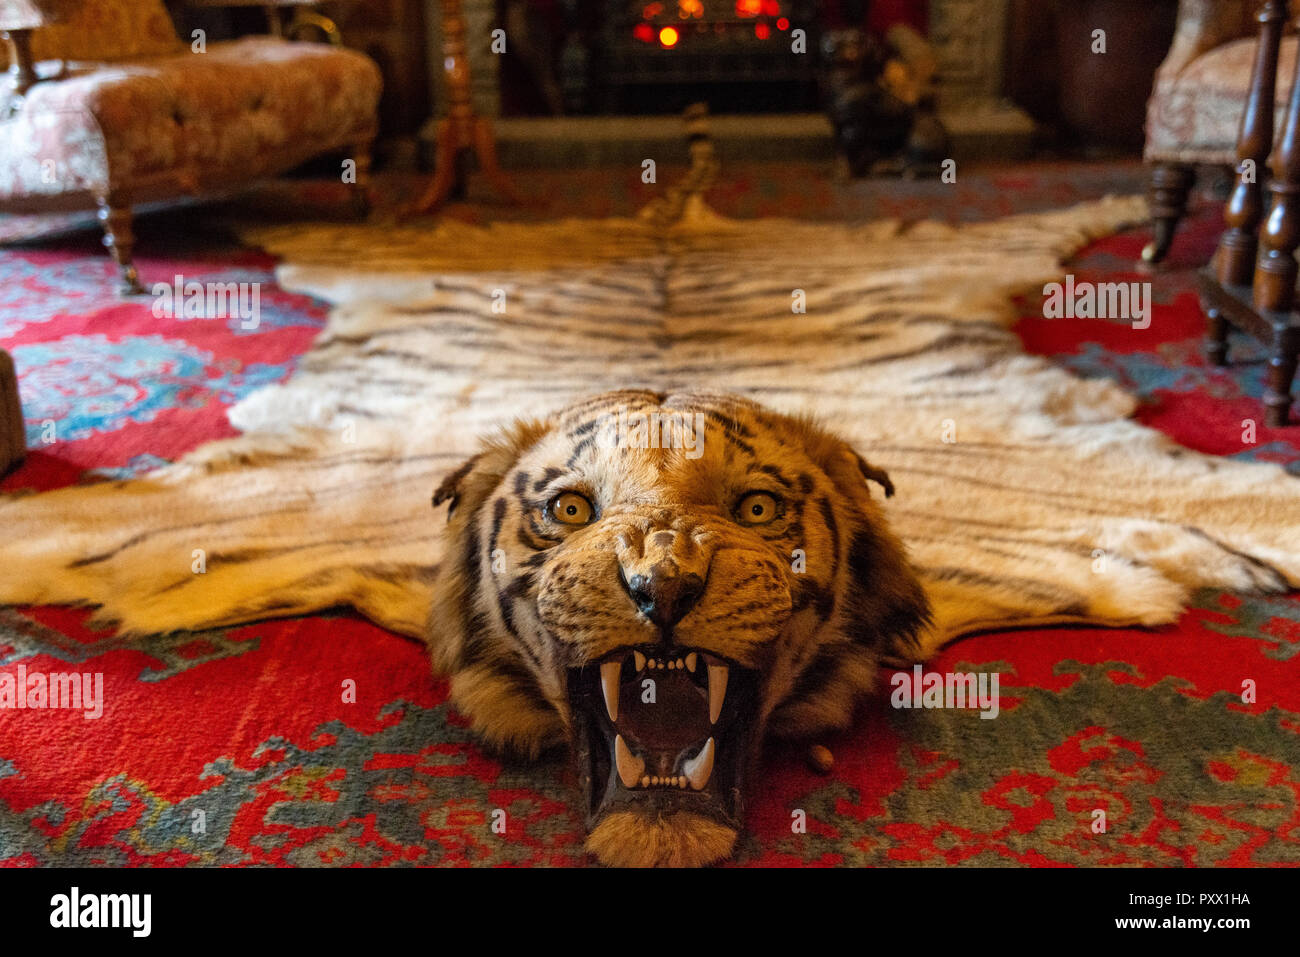 Low angled view of an antique tiger skin rug with the eyes staring and fangs bared on a red carpet. - Stock Image